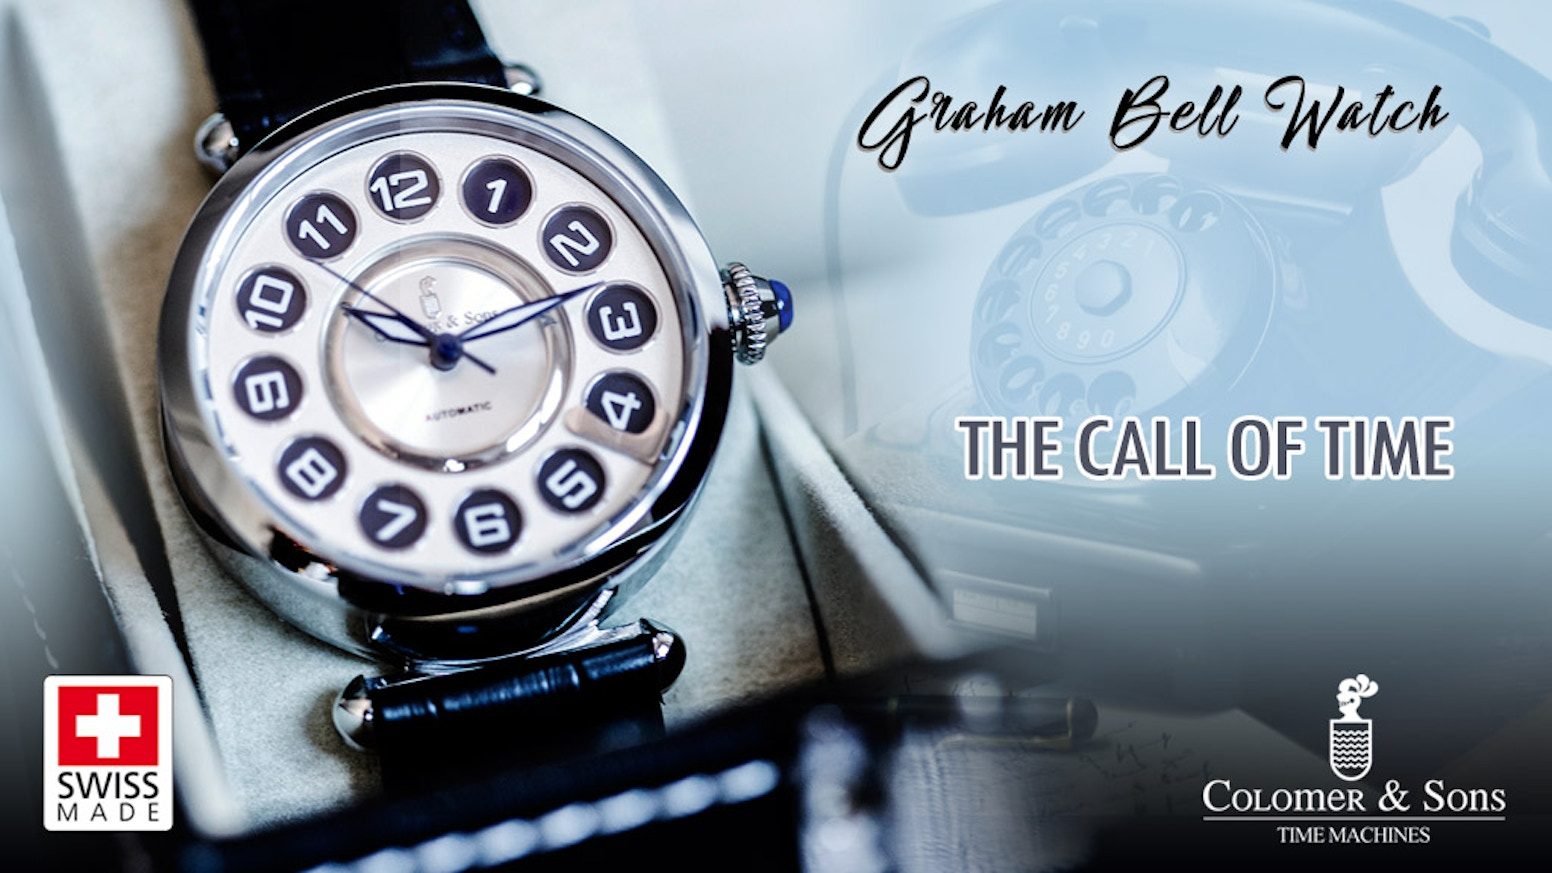 Commemorating Graham Bell's telephone invention, a Swiss watch with Sapphire crystal, full night vision, Automatic movement and more ..